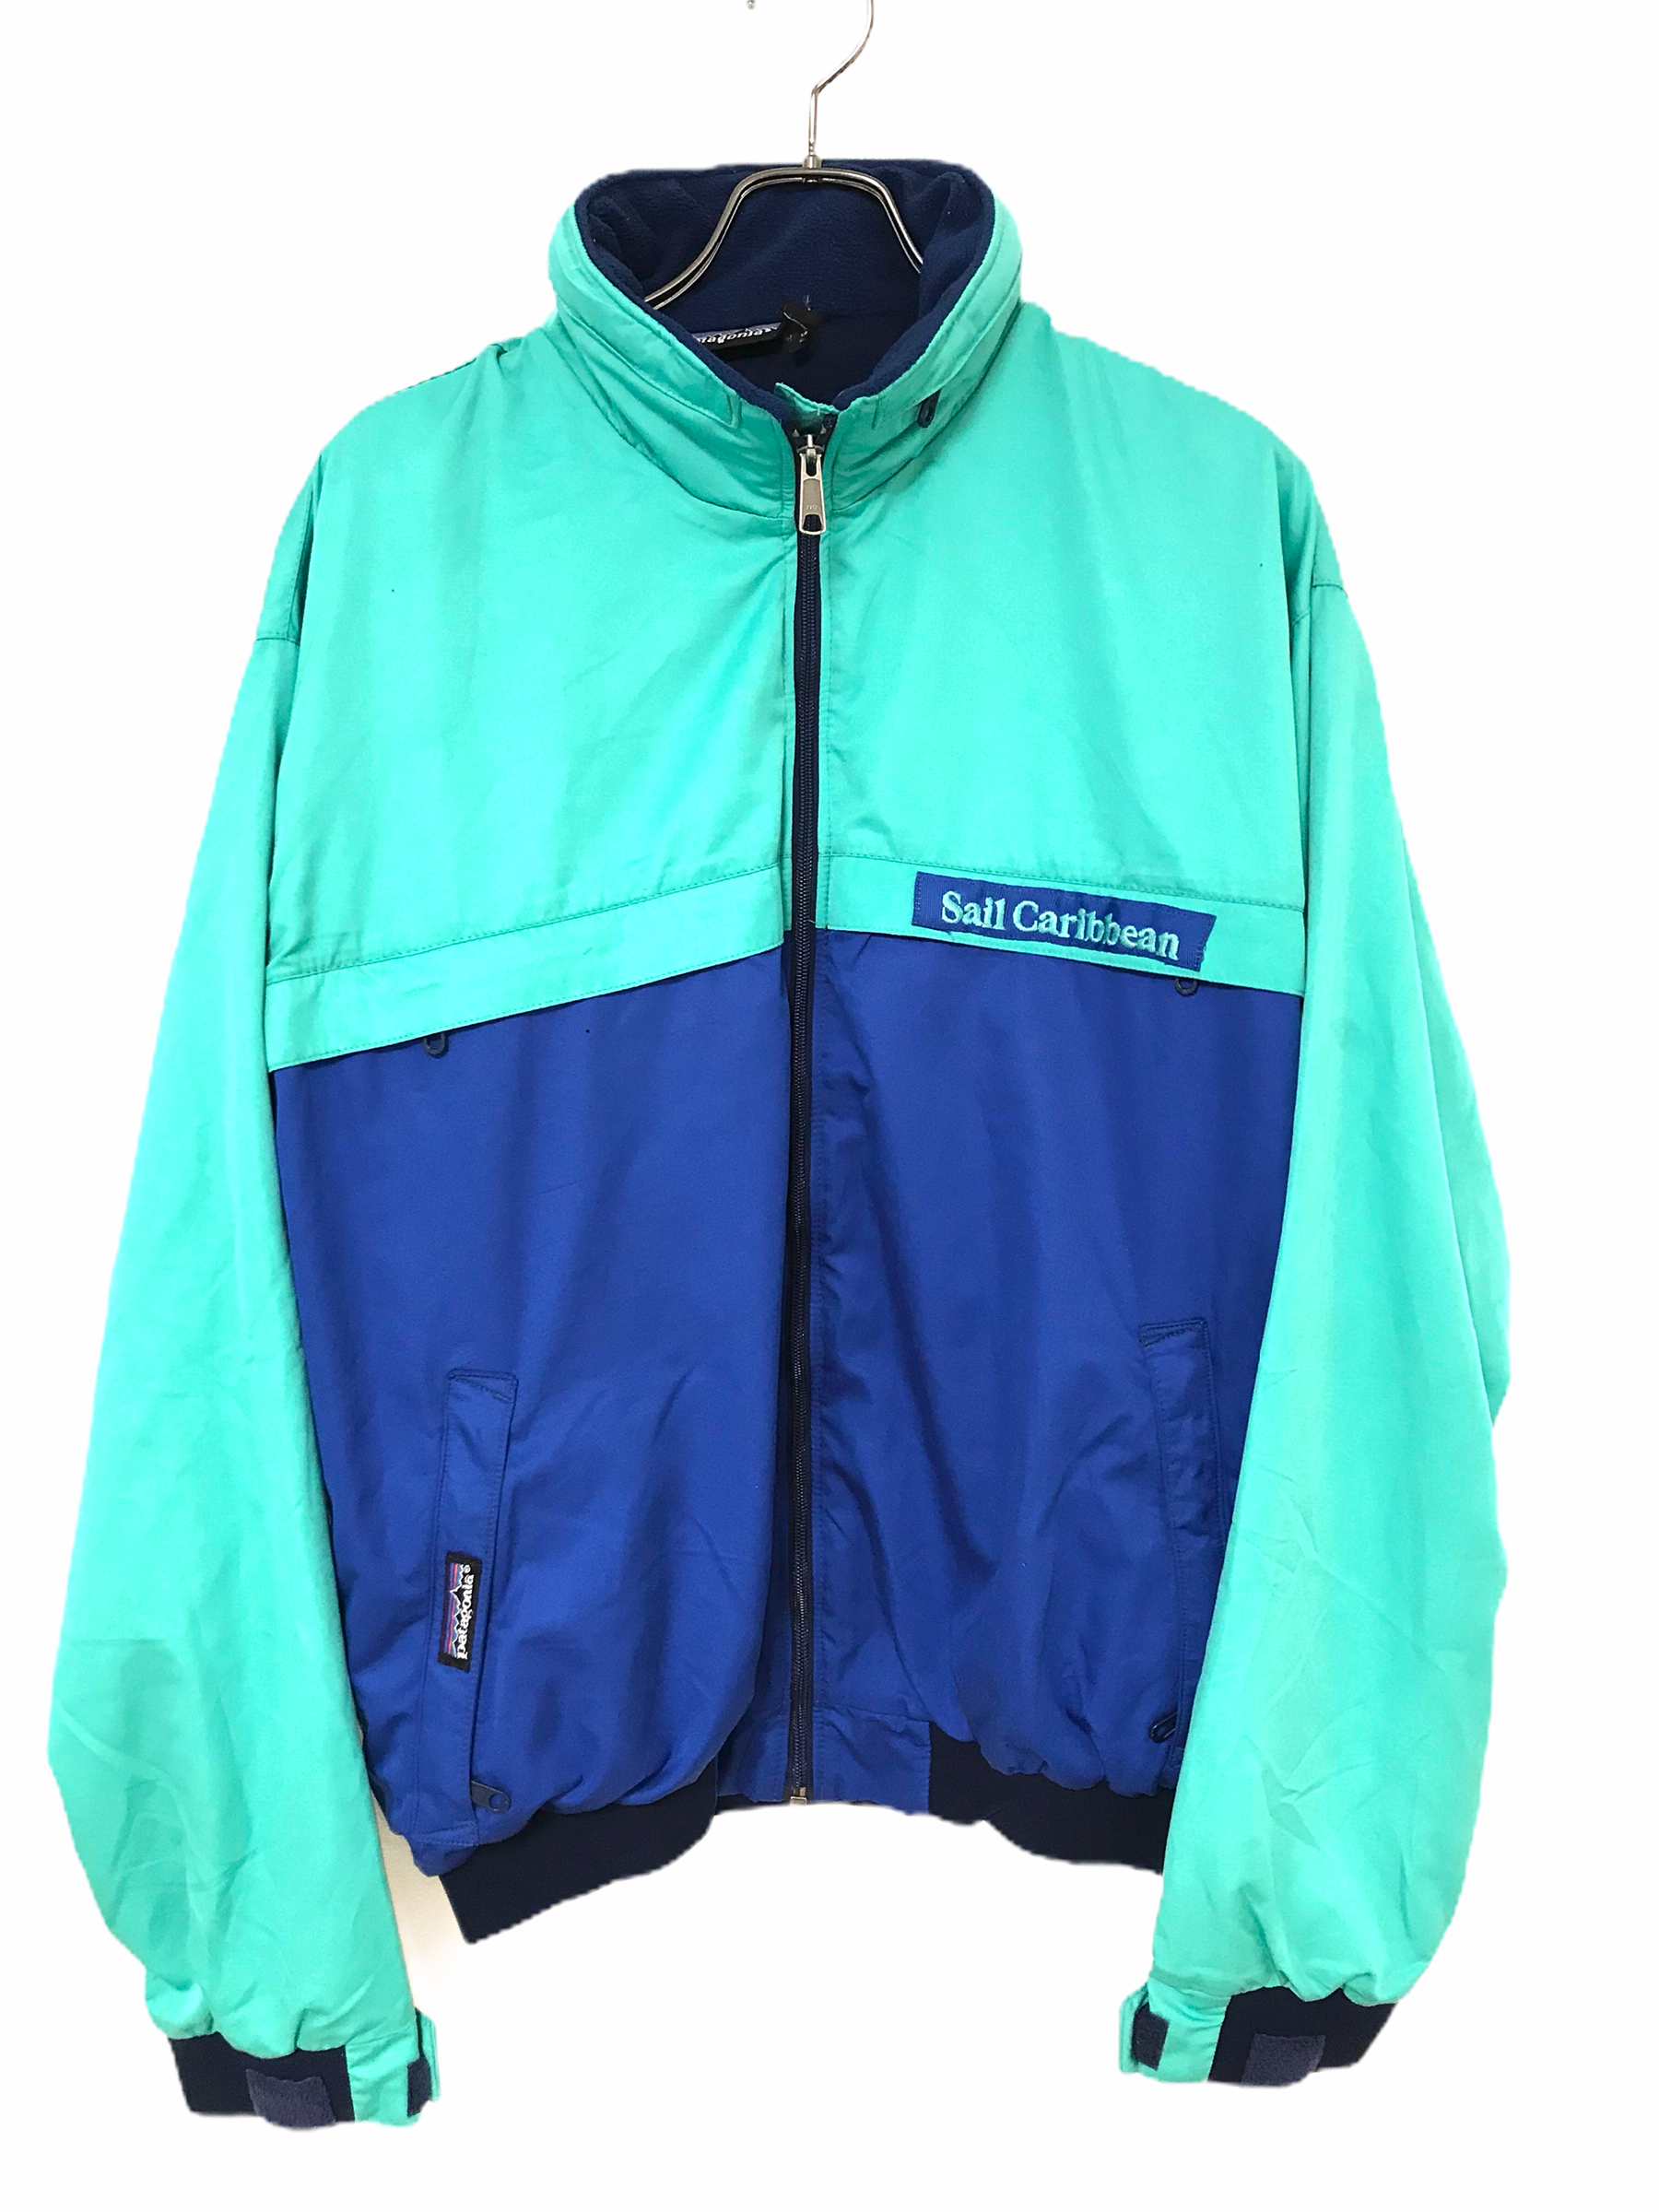 90's Patagonia Zip-up Blouson made in USA XL